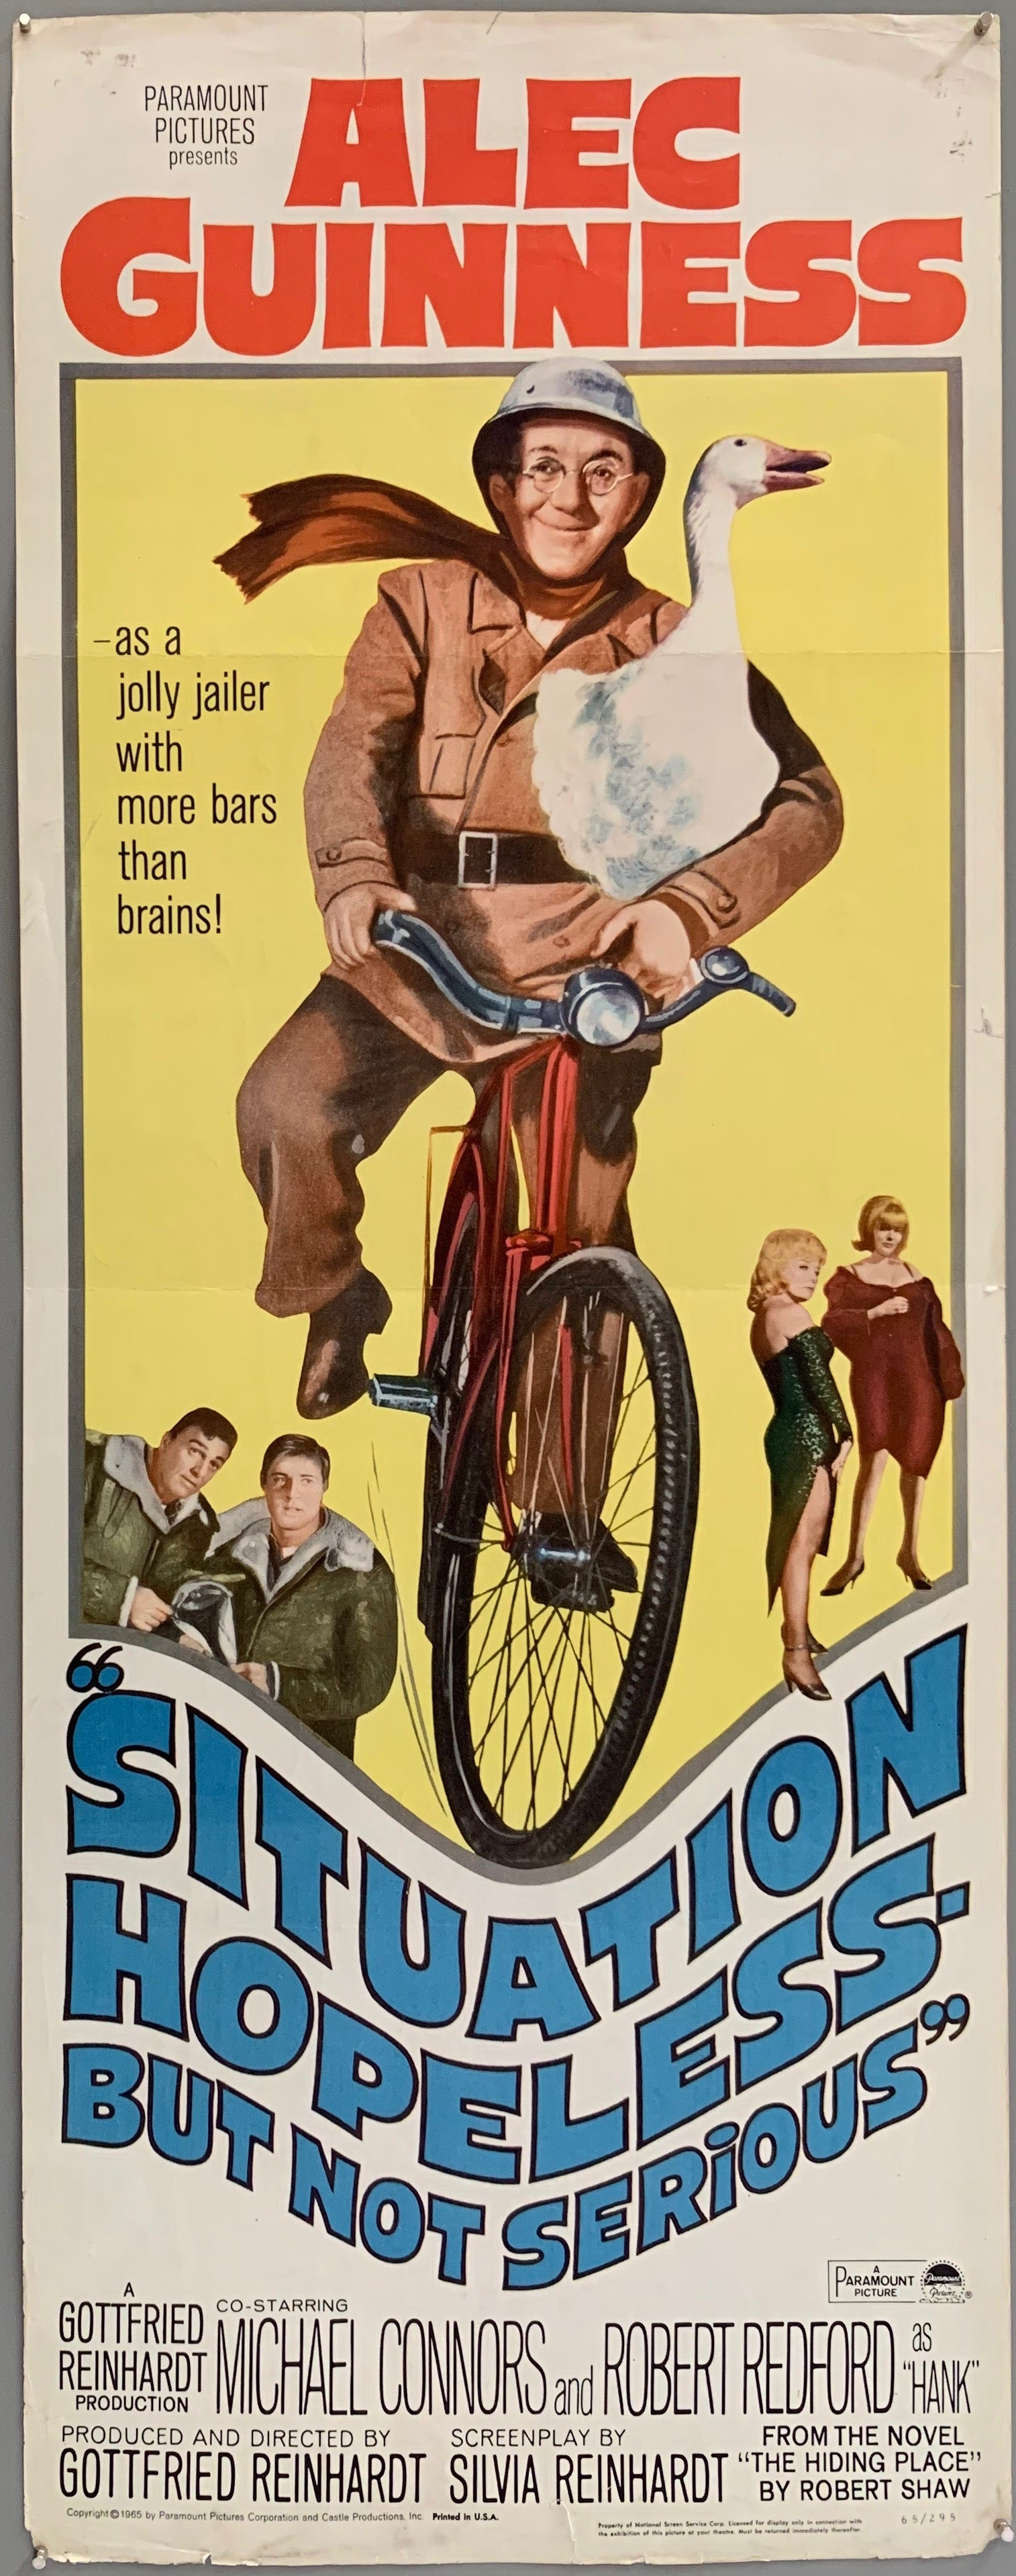 Situation Hopeless -- But Not Serious Poster